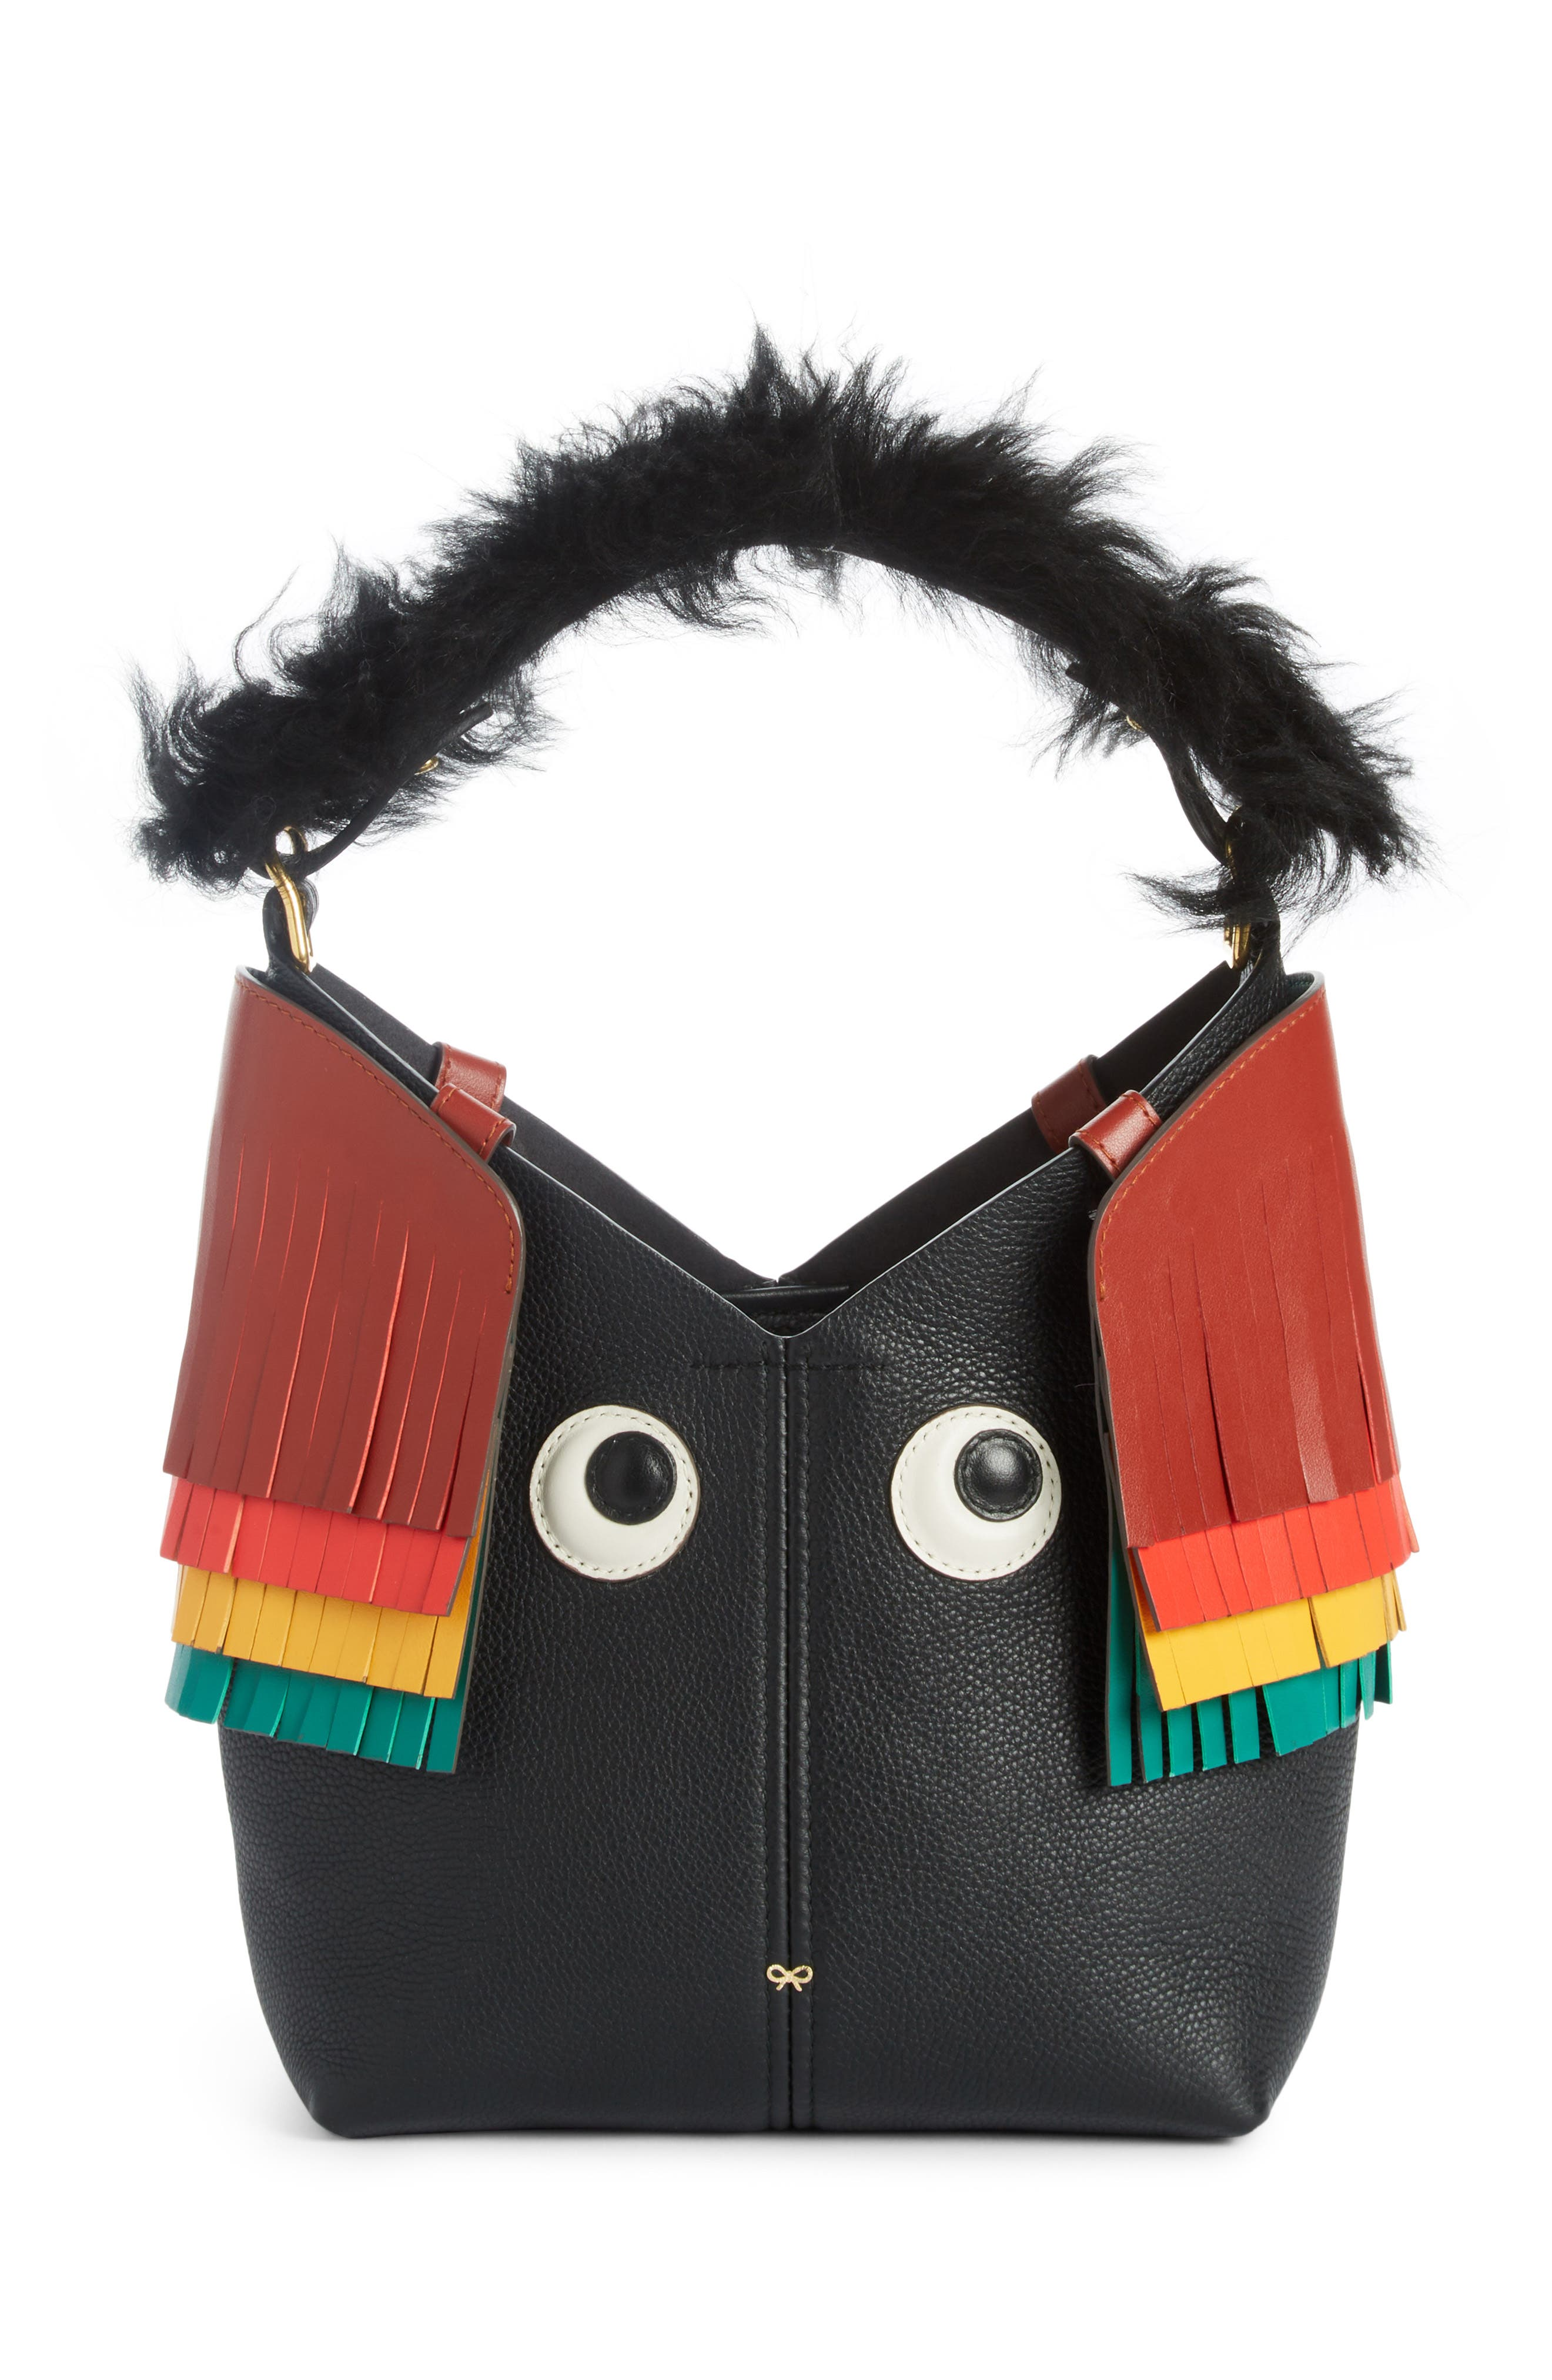 Build a Bag Mini Creature Leather Shoulder Bag with Genuine Shearling,                             Main thumbnail 1, color,                             Black